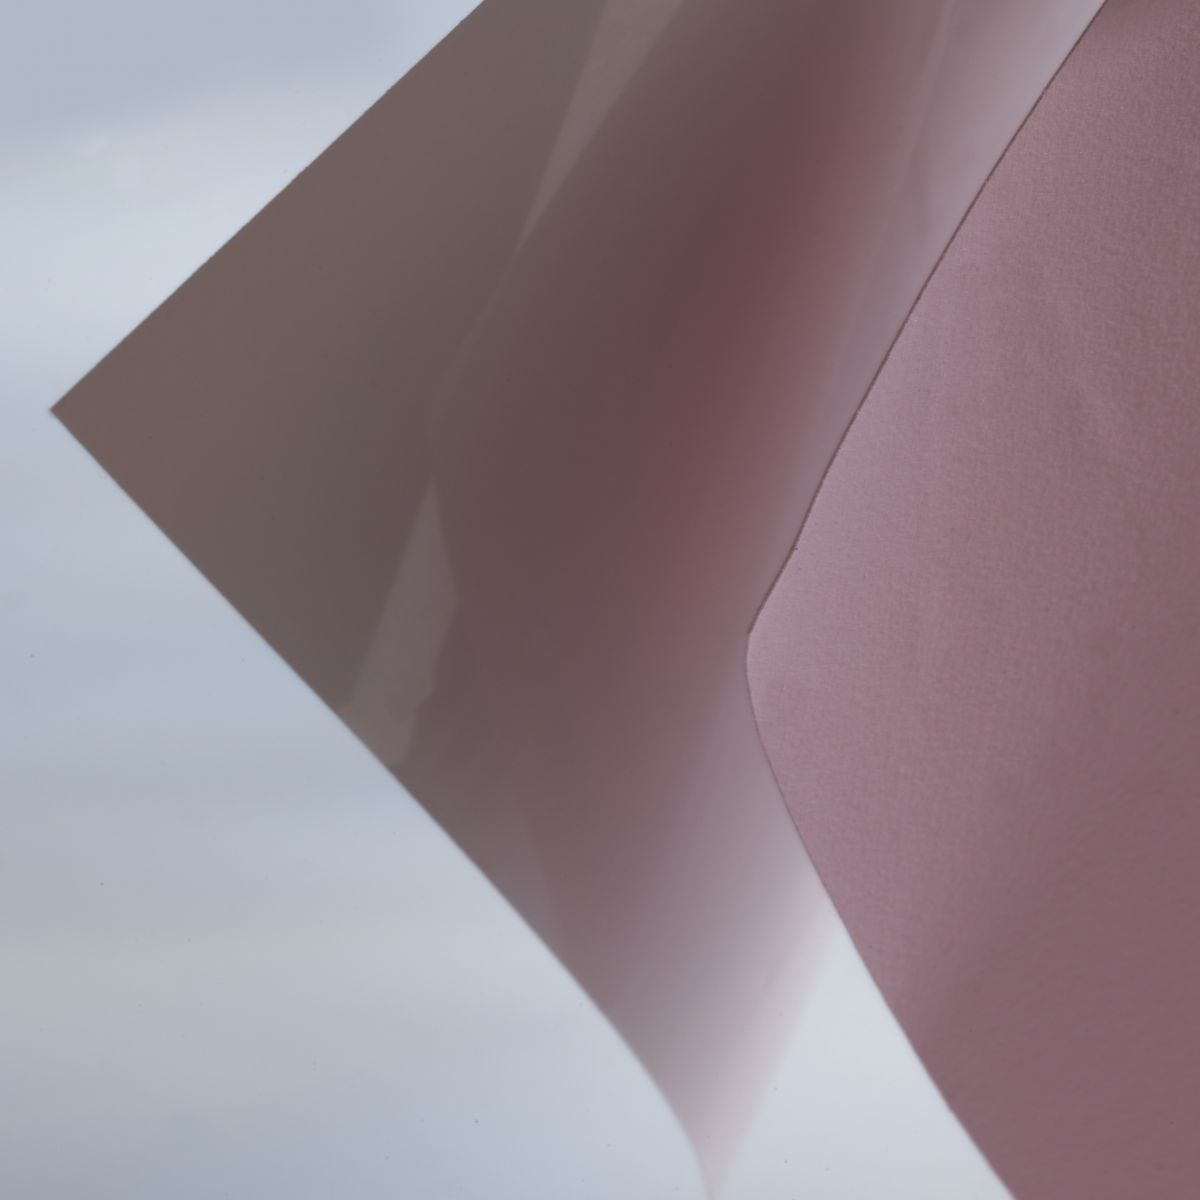 35 wmk pink high thermal conductive film